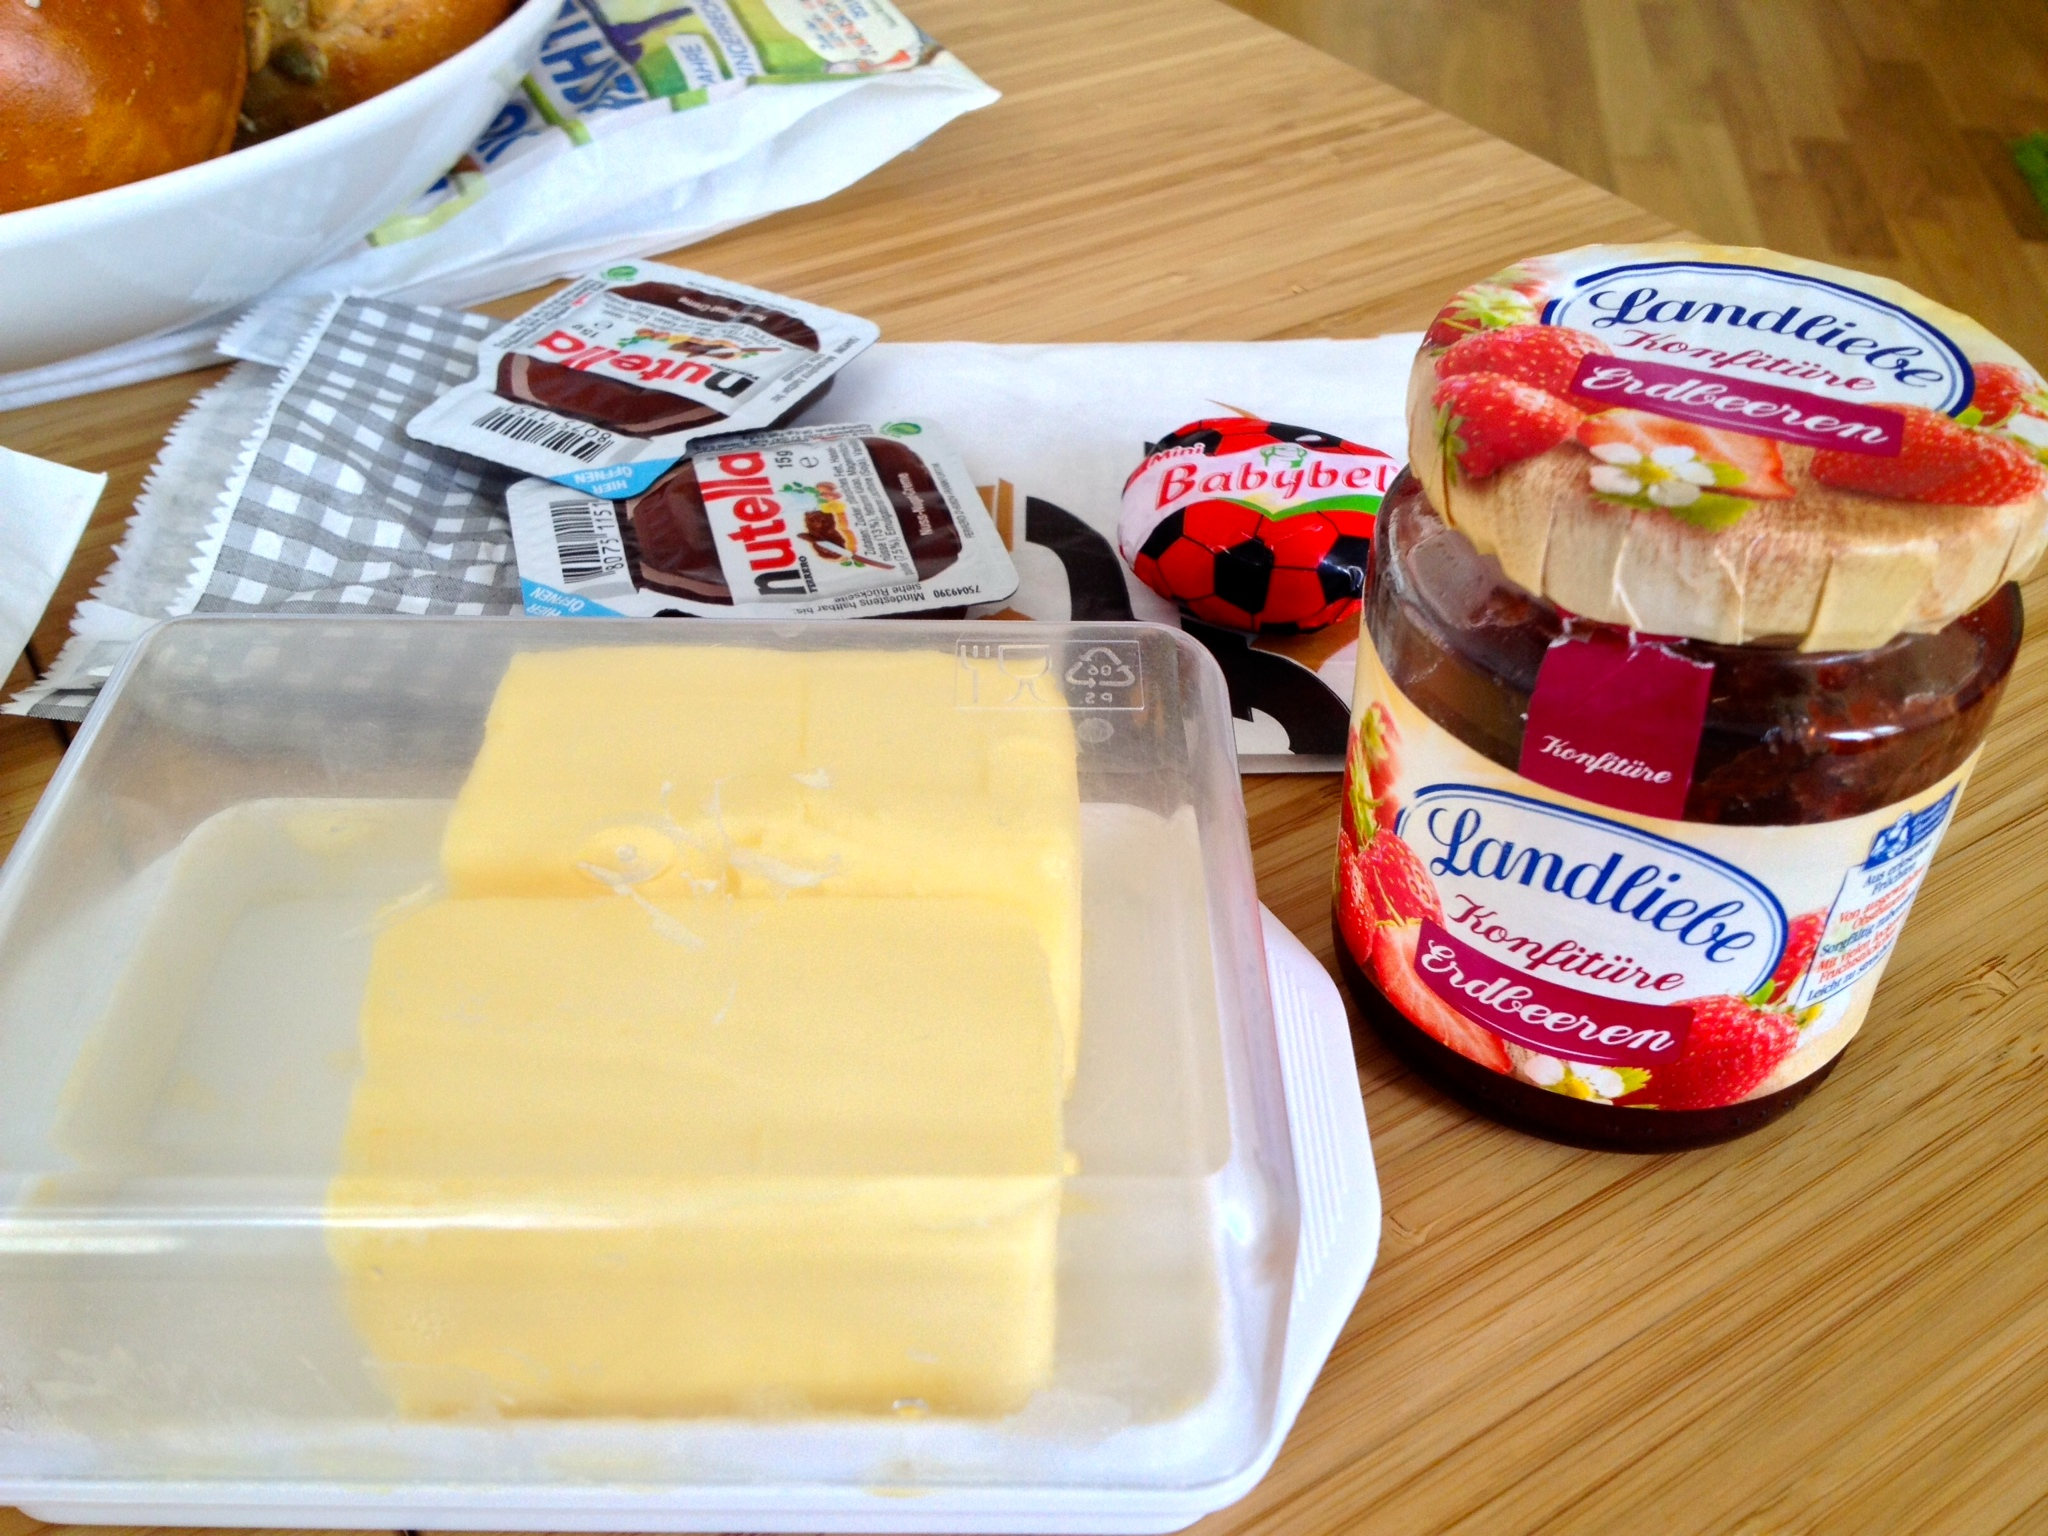 Toppings: butter, Nutella, cheese, and jam